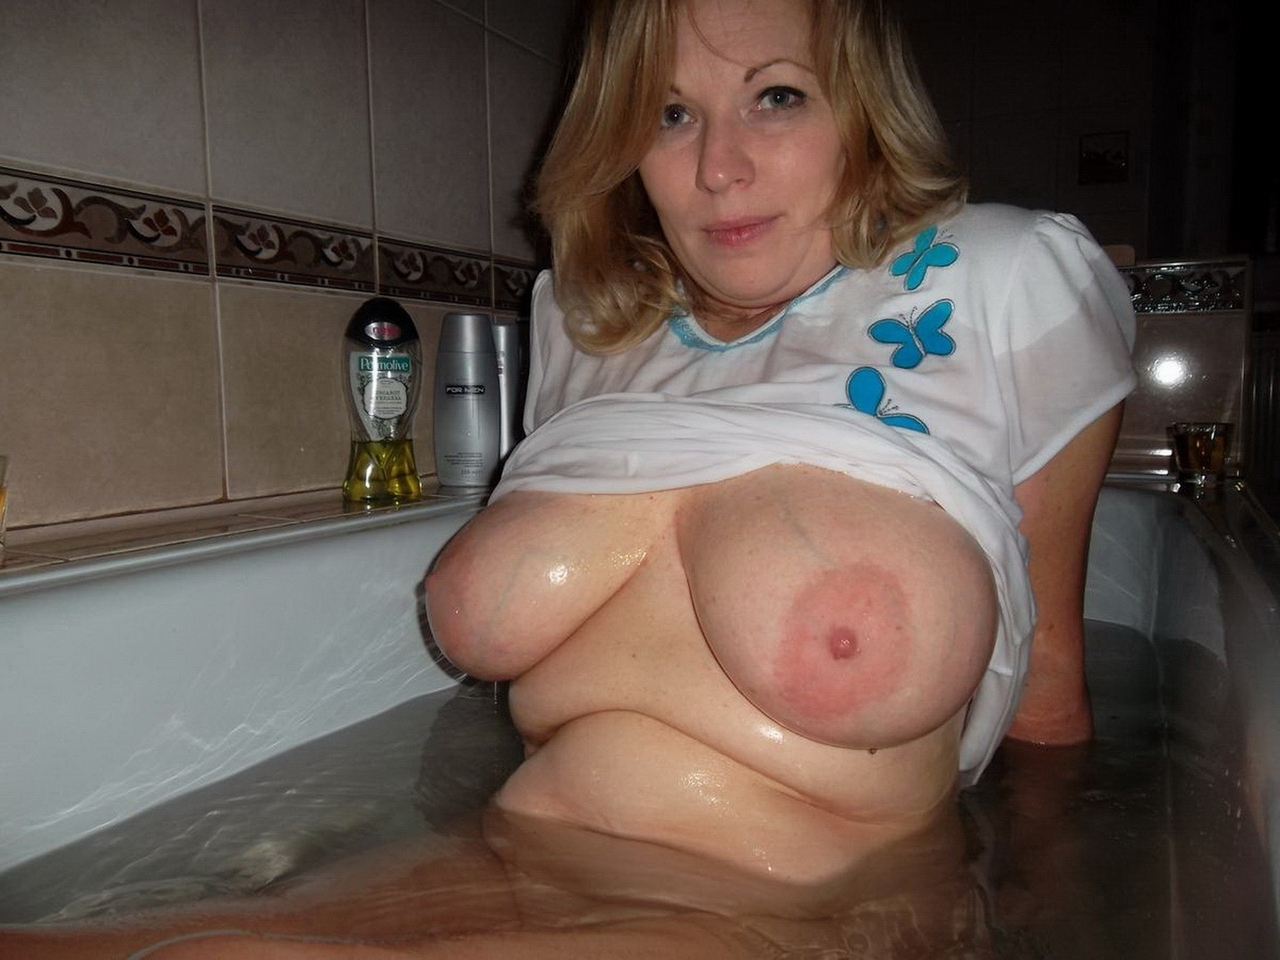 huge amateur mature tits naked girls - disneydiscount